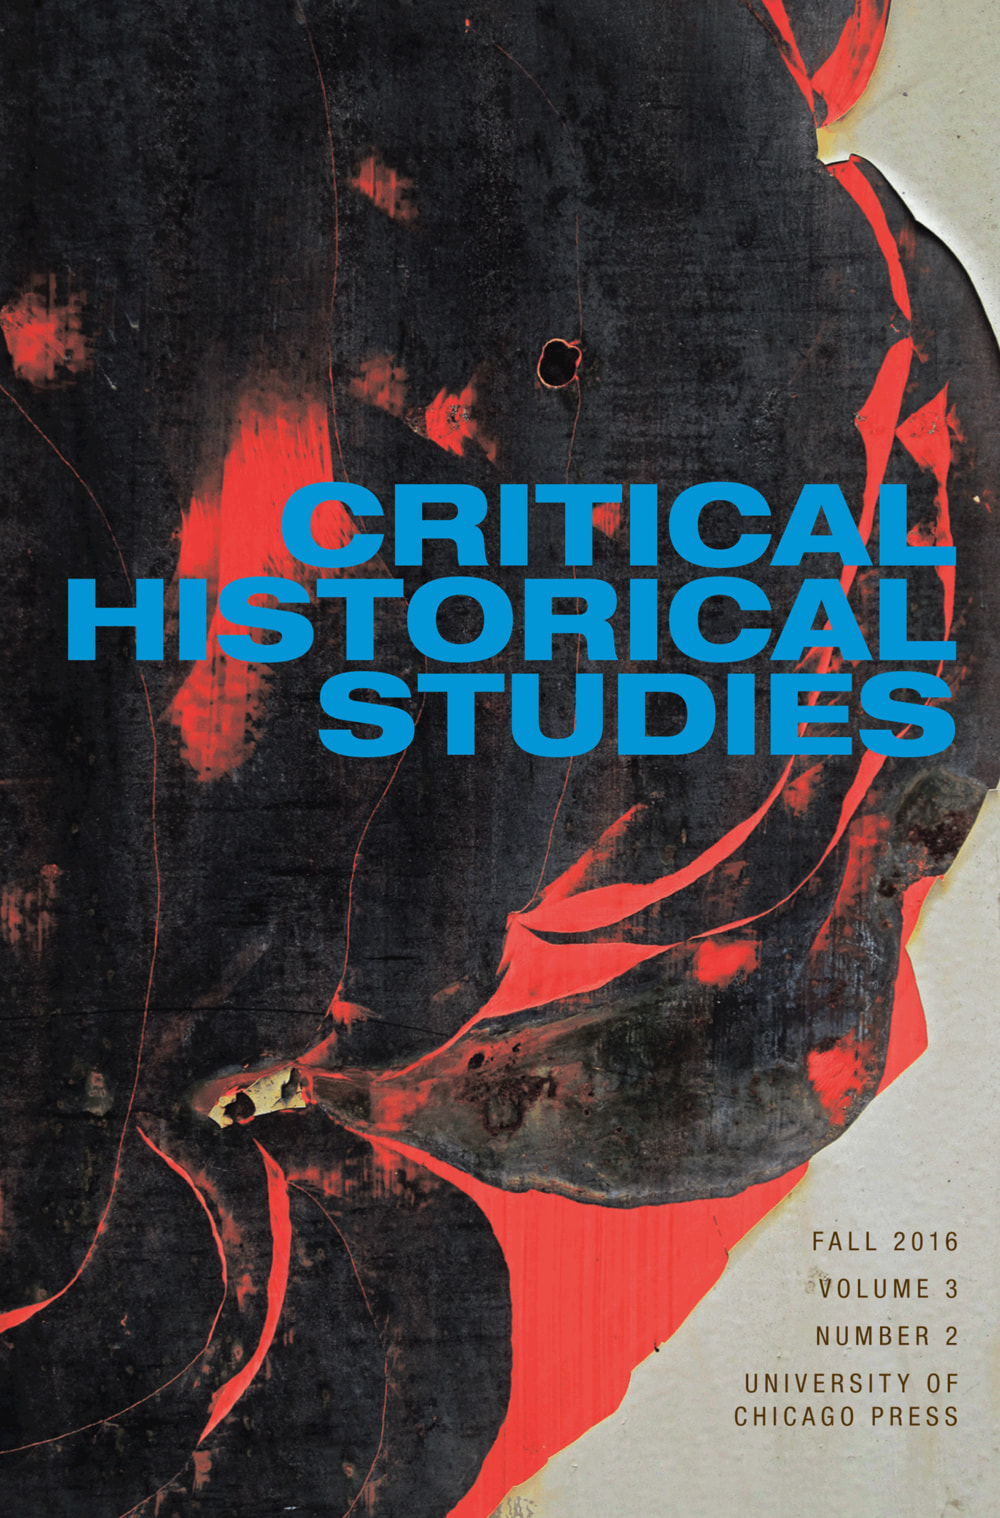 Critical Historical Studies cover, Fall 2016, Volume 3, Number 2